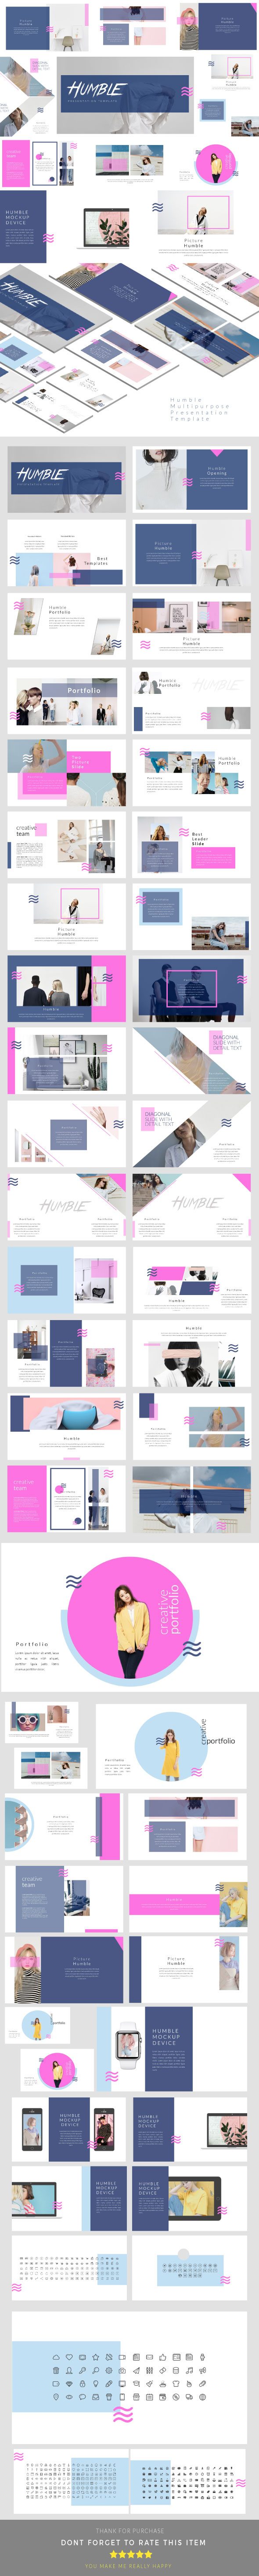 Humble - Multipurpose Presentation Templates - PowerPoint Templates Presentation Templates